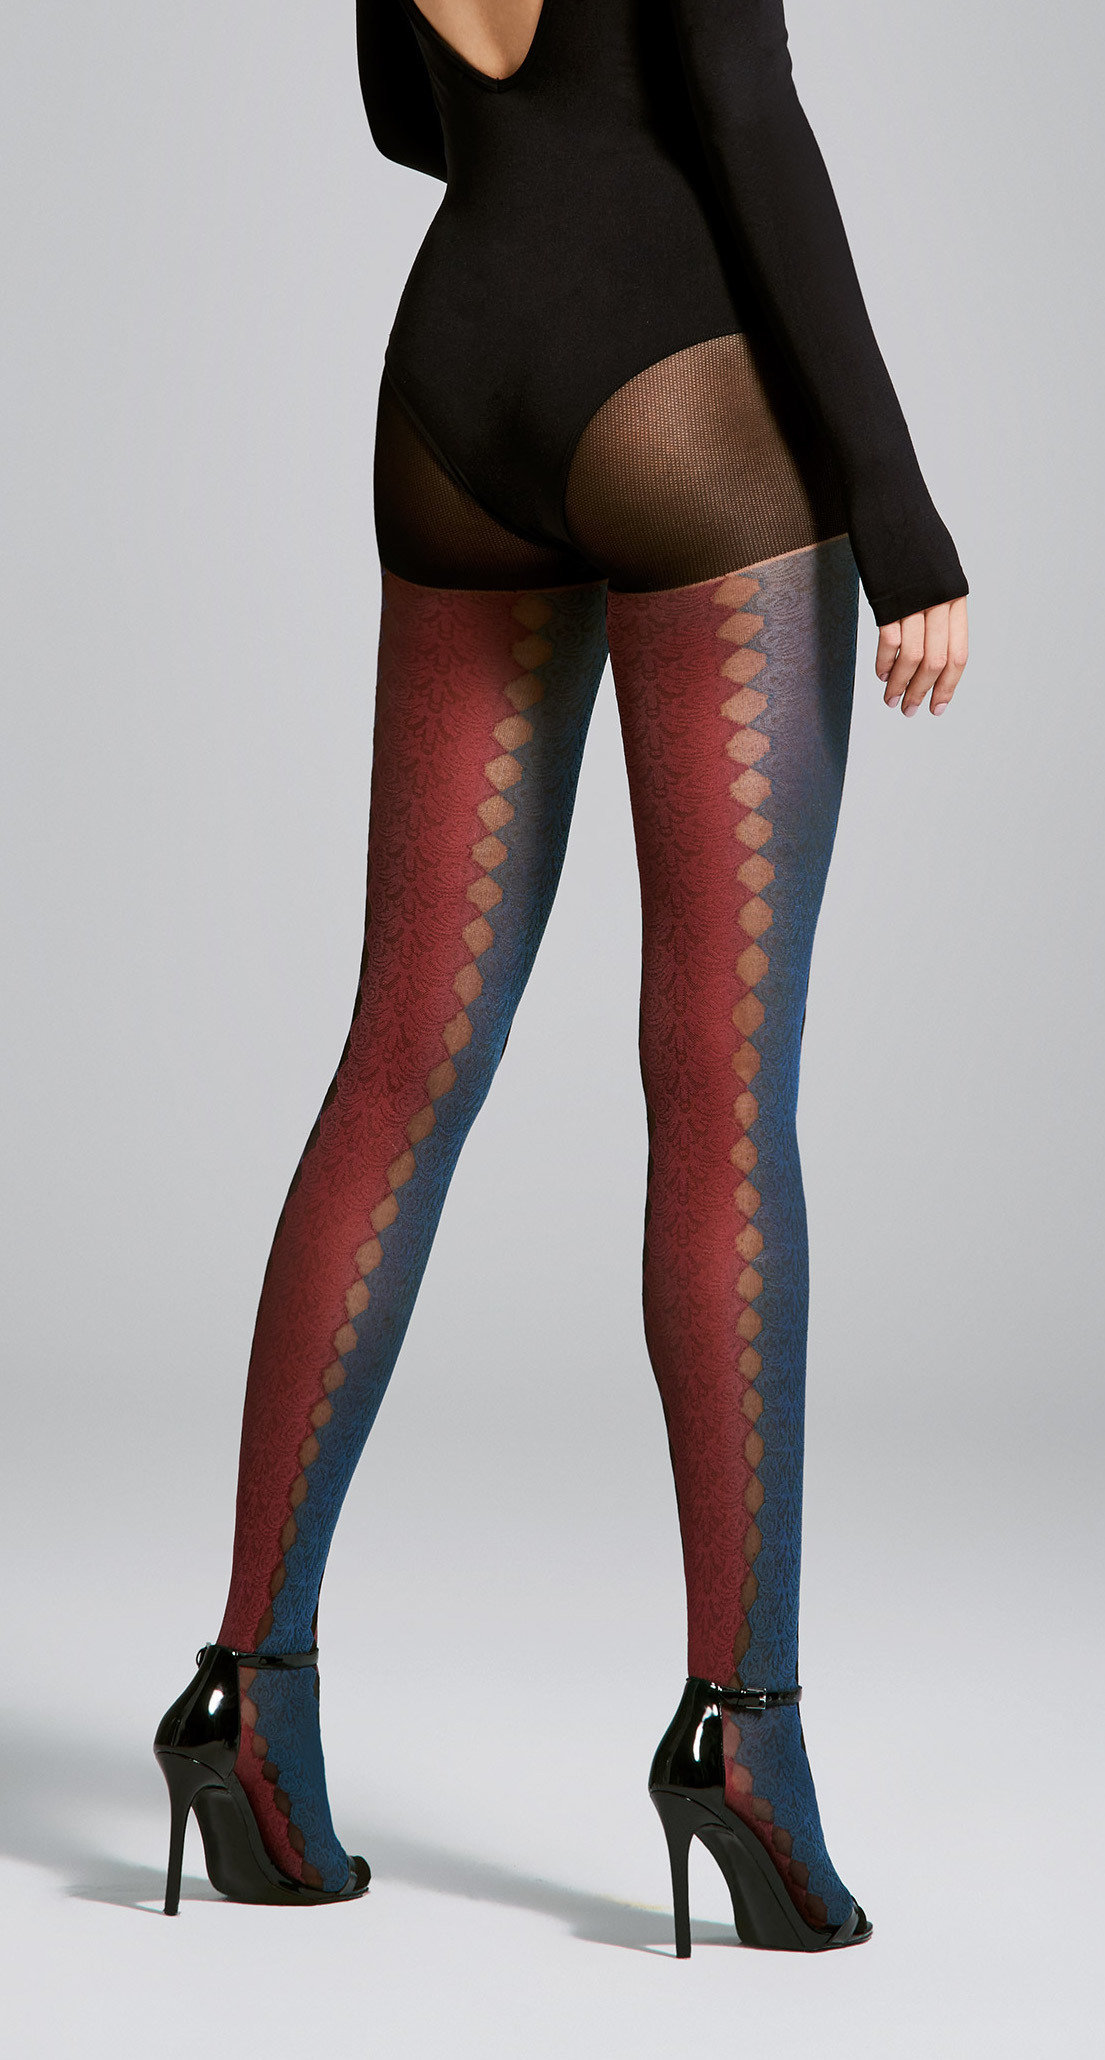 Fiore: Sexy Sunset Sunrise Semi-Opaque Tights SOLD OUT FIO_JOURNEY_N